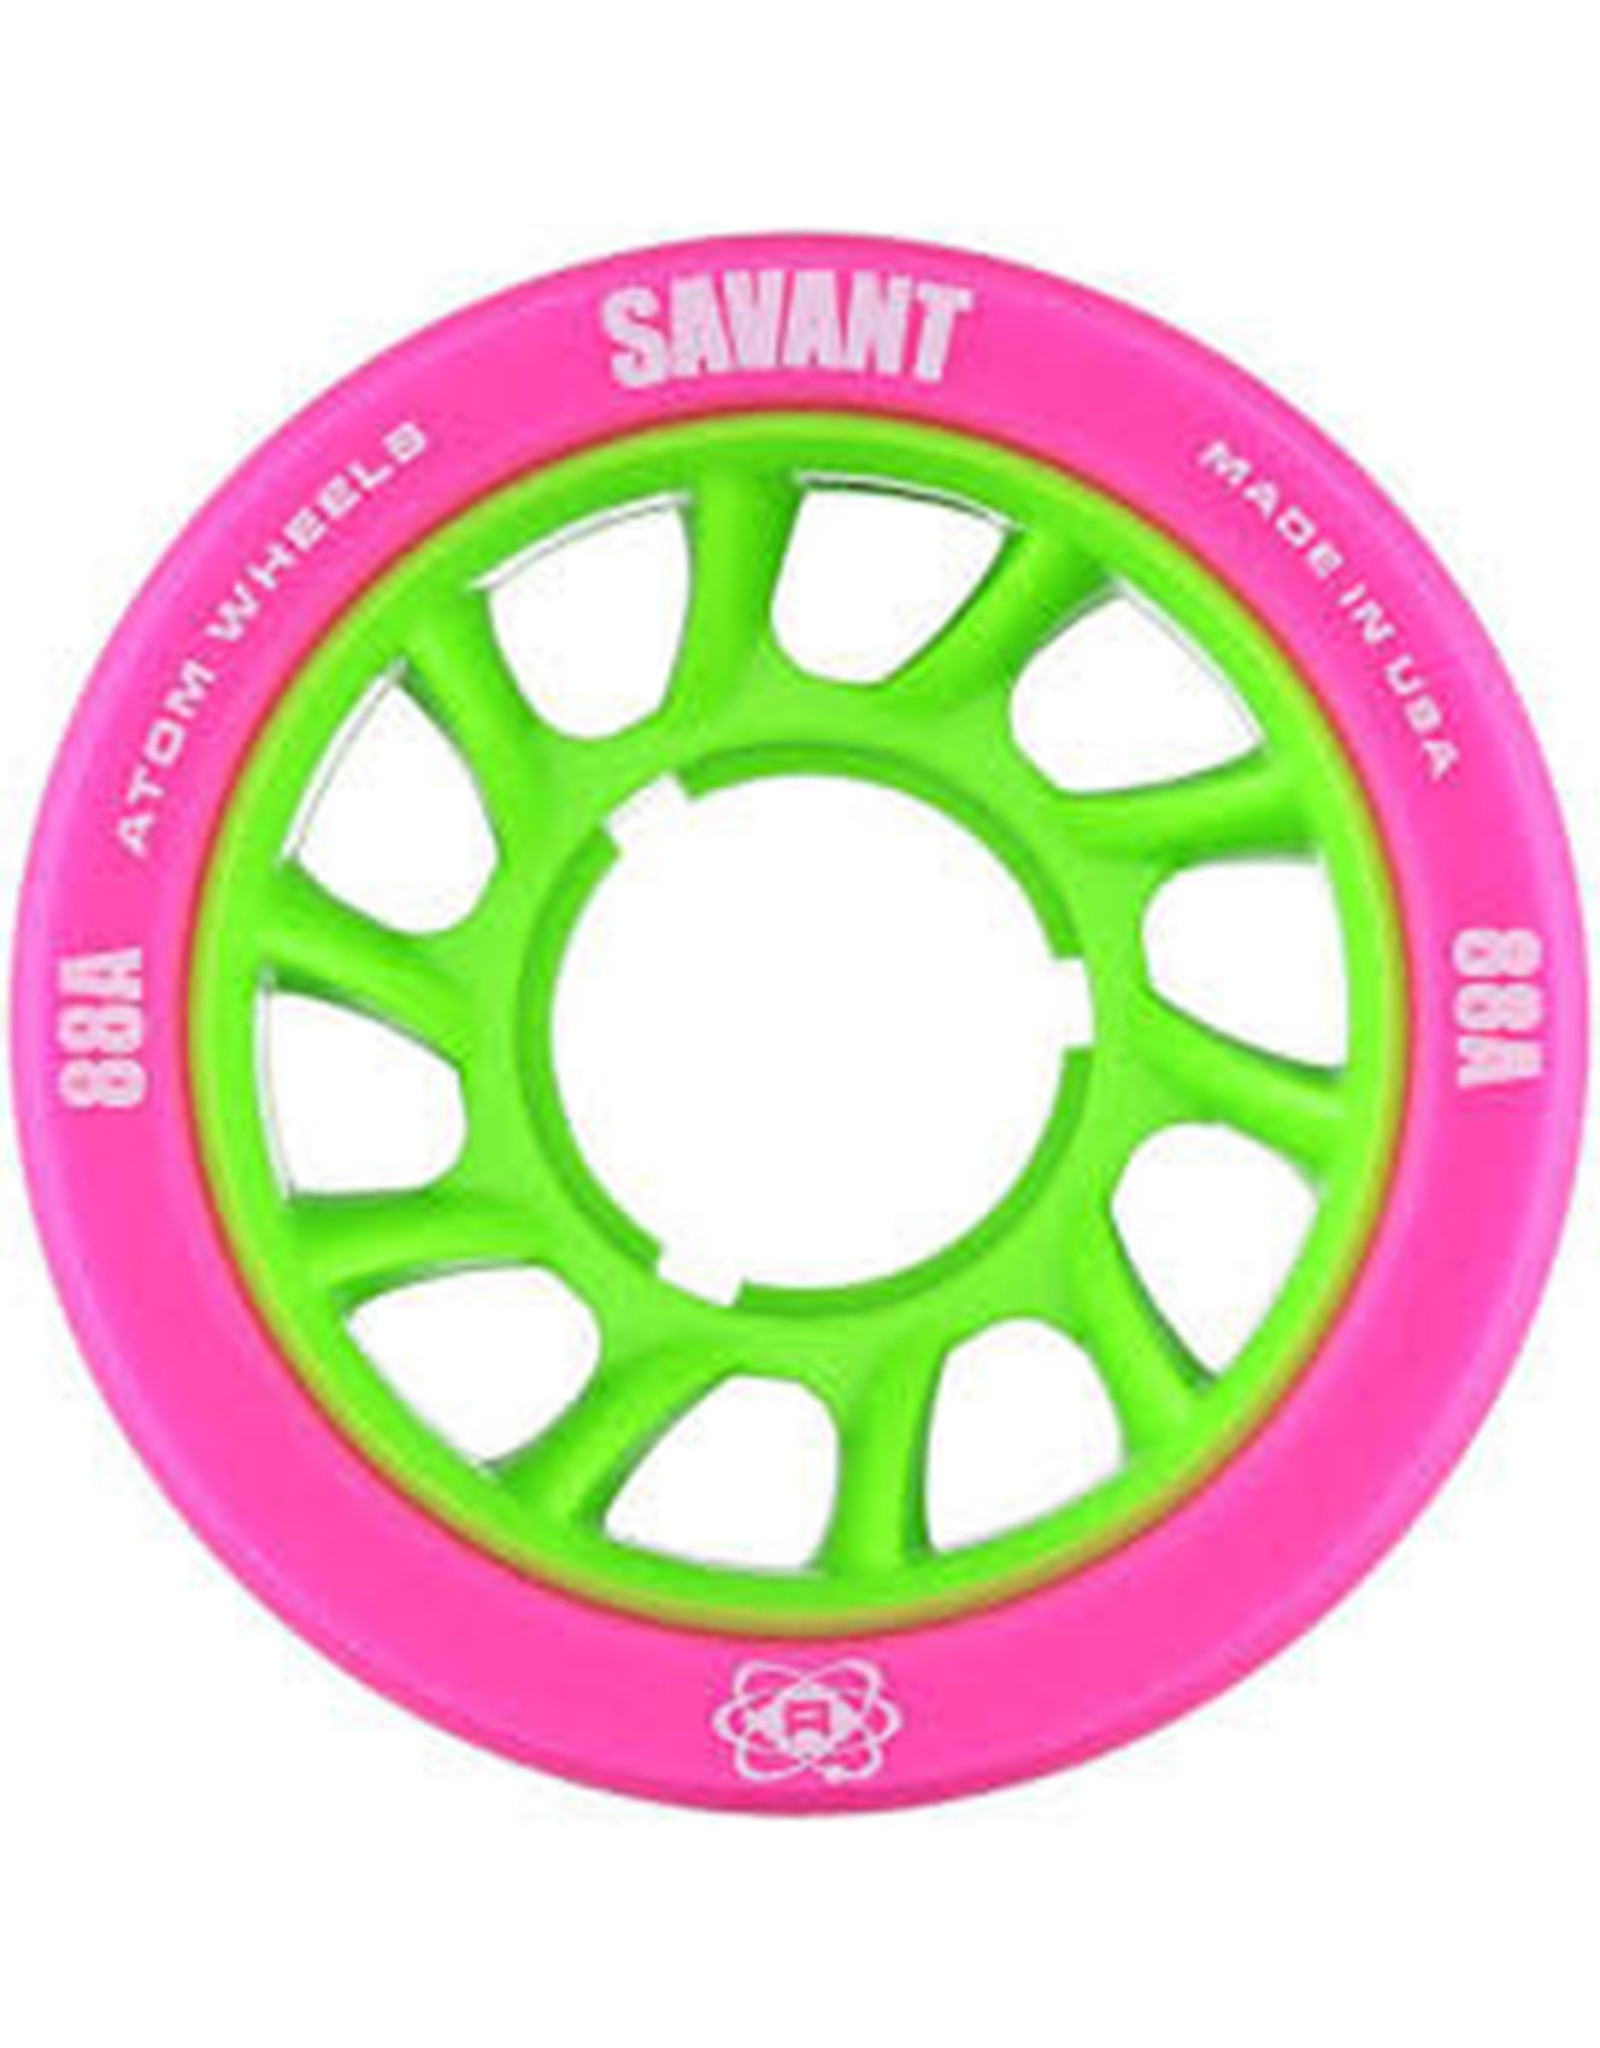 Atom Atom Savant Wheels, 4 Pack